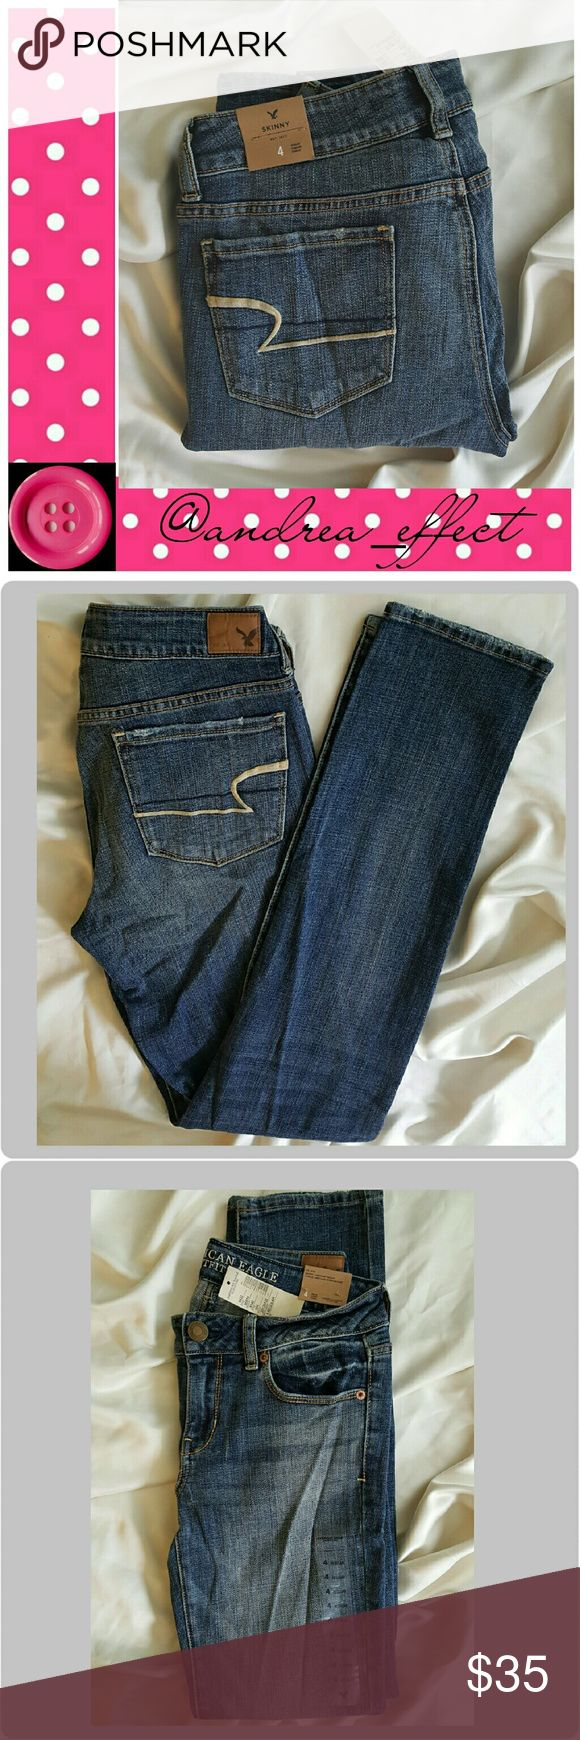 American Eagle Skinny. Size 4. NWT Skinny Jeans Style - Heritage Medium. Style #8140.  Distressed look. American Eagle Outfitters Jeans Skinny